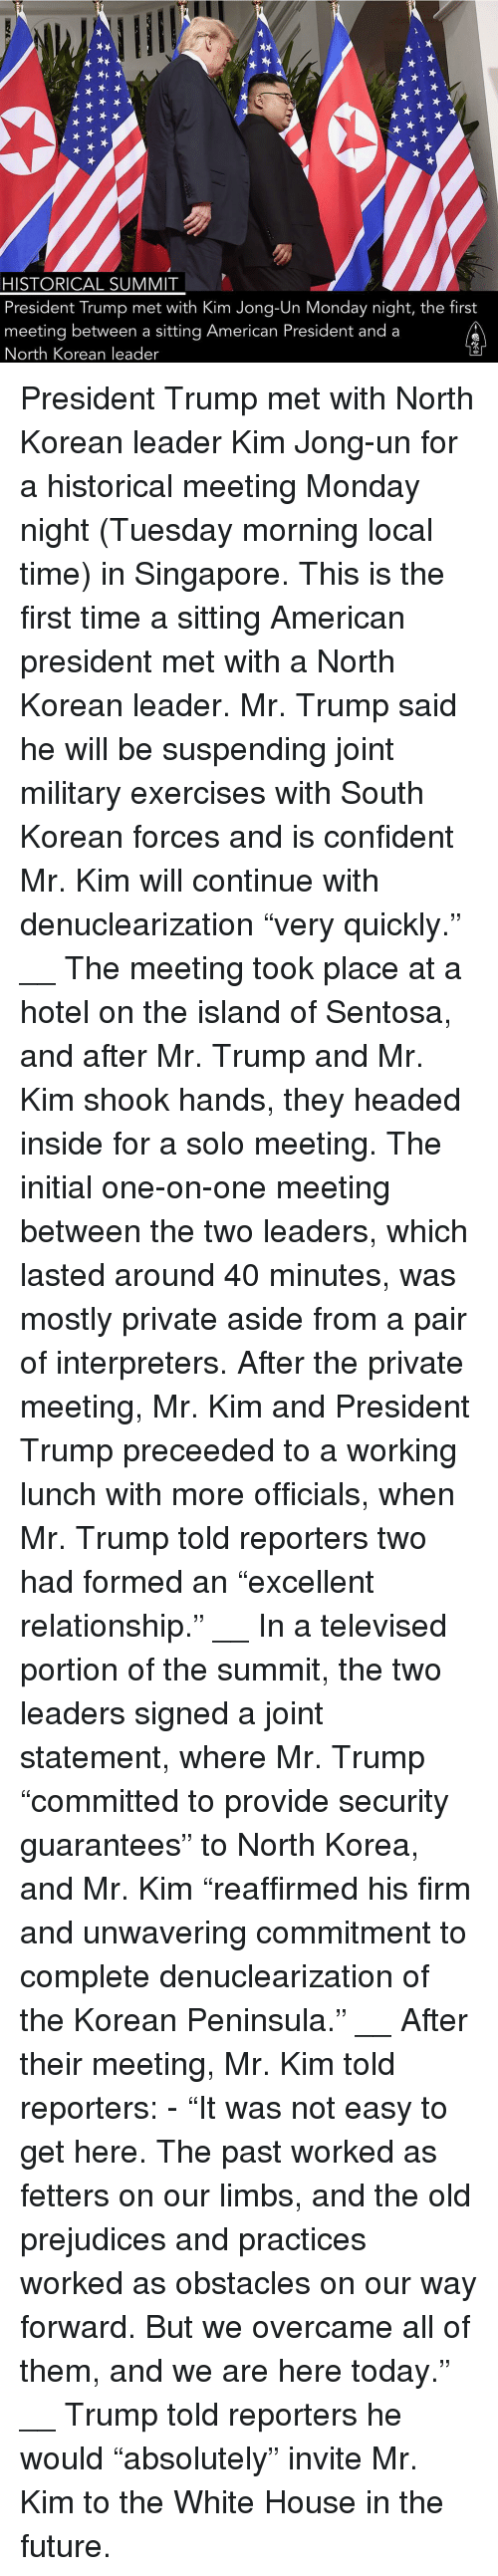 """Future, Kim Jong-Un, and Memes: HISTORICAL SUMMIT  President Trump met with Kim Jong-Un Monday night, the first  meeting between a sitting American President and a  North Korean leader President Trump met with North Korean leader Kim Jong-un for a historical meeting Monday night (Tuesday morning local time) in Singapore. This is the first time a sitting American president met with a North Korean leader. Mr. Trump said he will be suspending joint military exercises with South Korean forces and is confident Mr. Kim will continue with denuclearization """"very quickly."""" __ The meeting took place at a hotel on the island of Sentosa, and after Mr. Trump and Mr. Kim shook hands, they headed inside for a solo meeting. The initial one-on-one meeting between the two leaders, which lasted around 40 minutes, was mostly private aside from a pair of interpreters. After the private meeting, Mr. Kim and President Trump preceeded to a working lunch with more officials, when Mr. Trump told reporters two had formed an """"excellent relationship."""" __ In a televised portion of the summit, the two leaders signed a joint statement, where Mr. Trump """"committed to provide security guarantees"""" to North Korea, and Mr. Kim """"reaffirmed his firm and unwavering commitment to complete denuclearization of the Korean Peninsula."""" __ After their meeting, Mr. Kim told reporters: - """"It was not easy to get here. The past worked as fetters on our limbs, and the old prejudices and practices worked as obstacles on our way forward. But we overcame all of them, and we are here today."""" __ Trump told reporters he would """"absolutely"""" invite Mr. Kim to the White House in the future."""